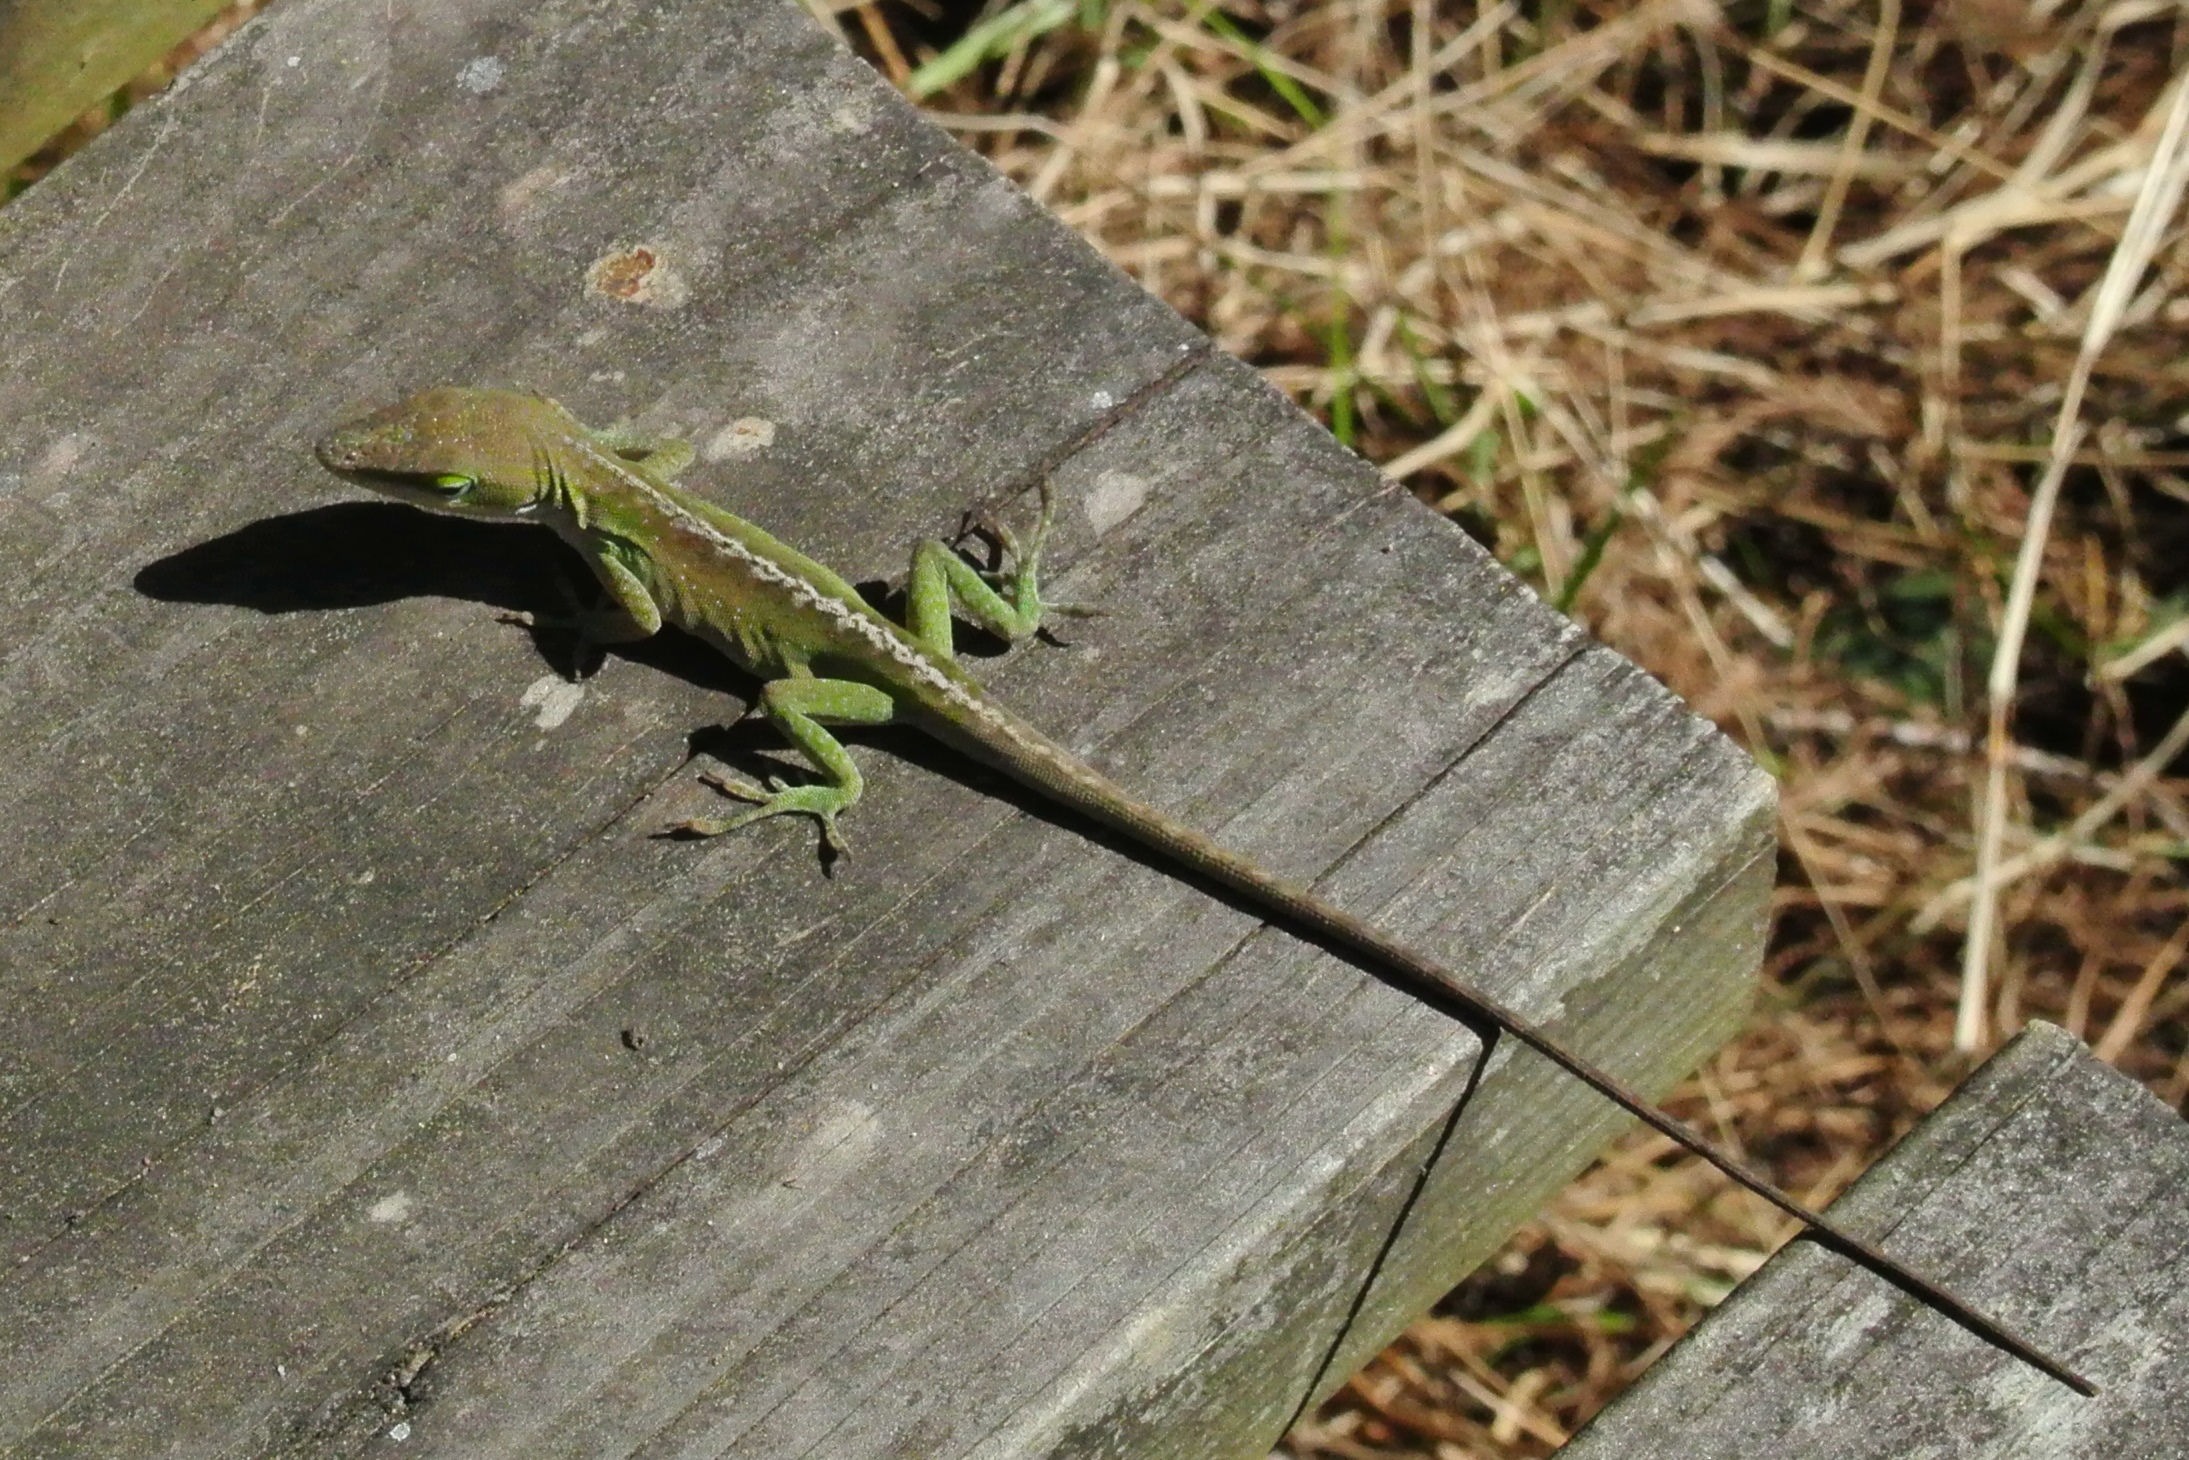 One of the other critters spotted on the fishing dock